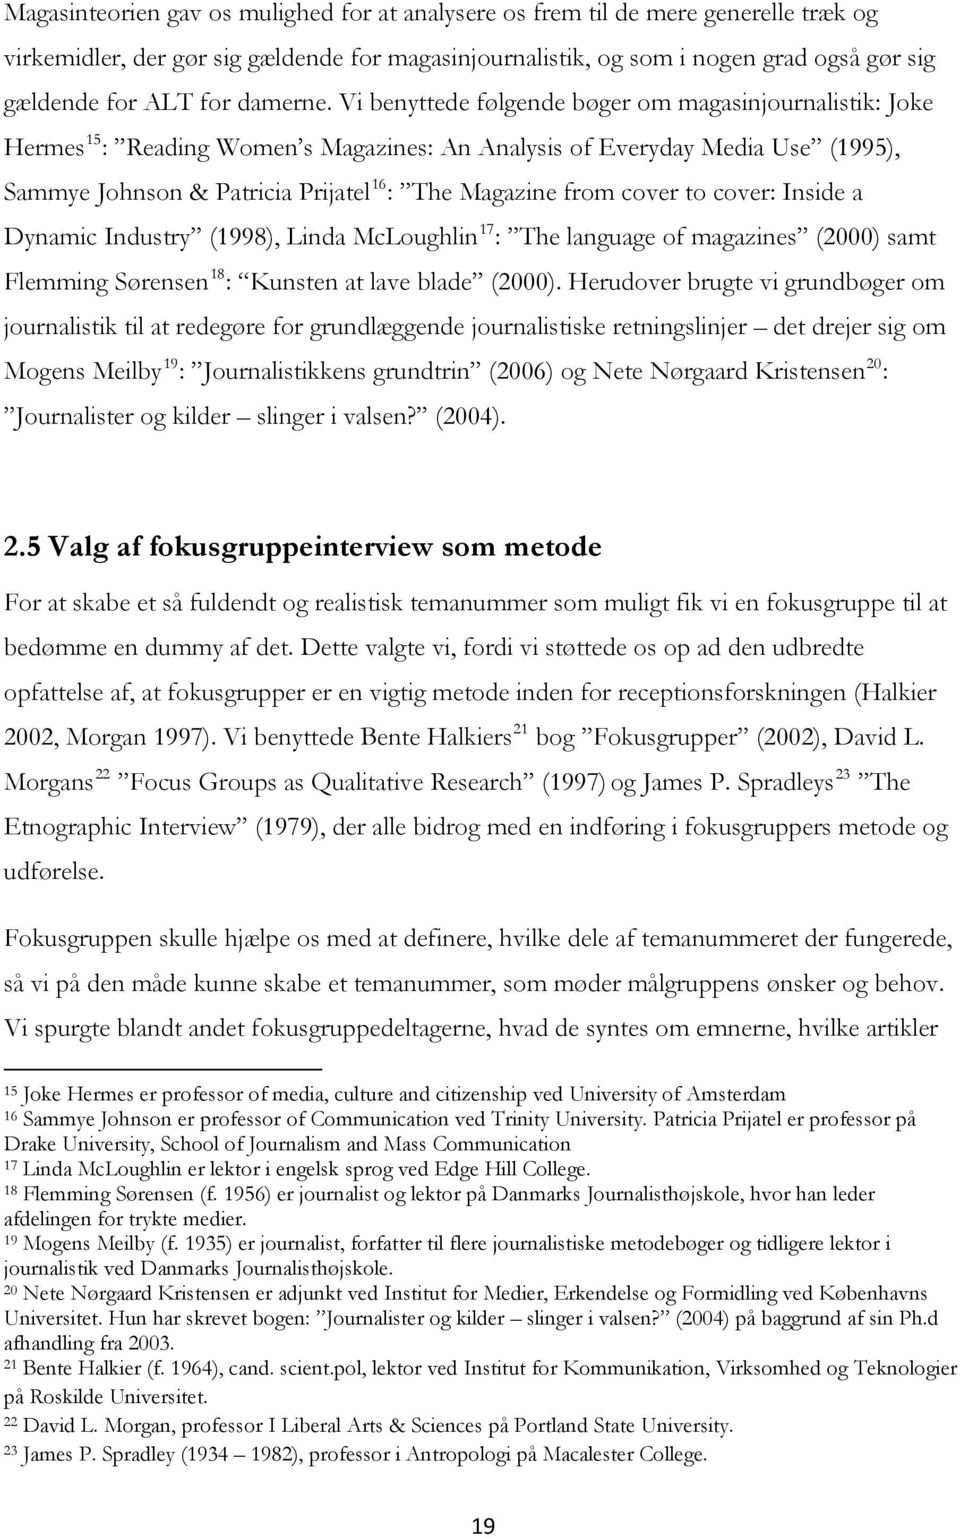 Vi benyttede følgende bøger om magasinjournalistik: Joke Hermes 15 : Reading Women s Magazines: An Analysis of Everyday Media Use (1995), Sammye Johnson & Patricia Prijatel 16 : The Magazine from